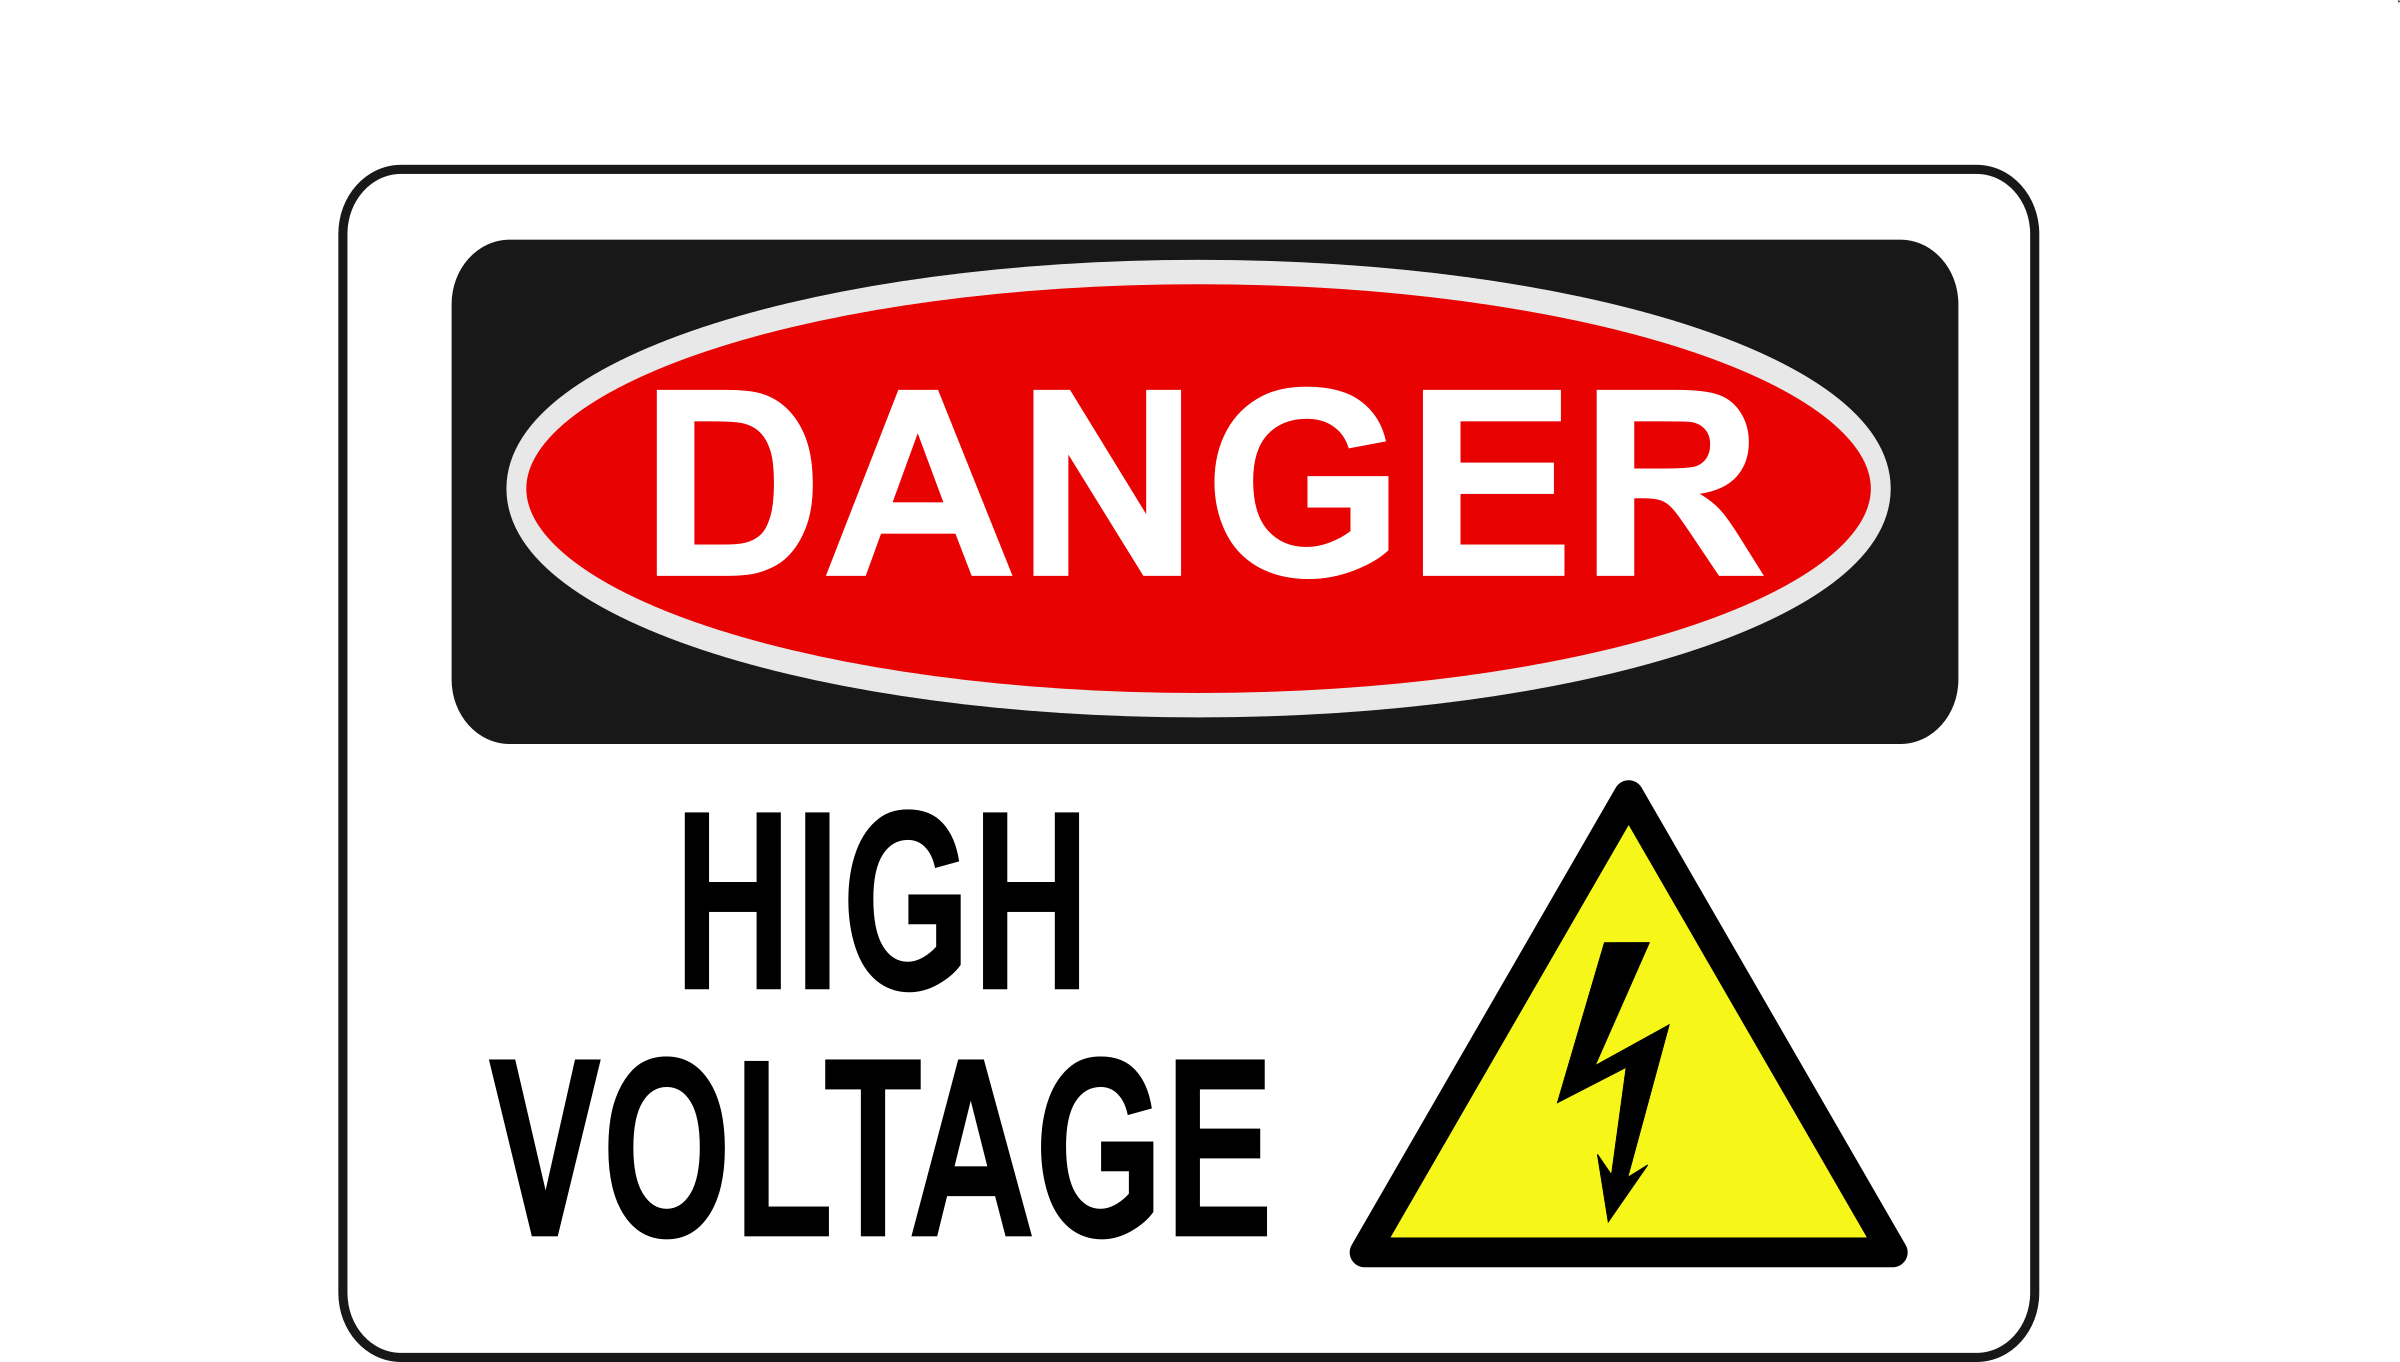 Danger - High Voltage (Alt 1) by Rfc1394